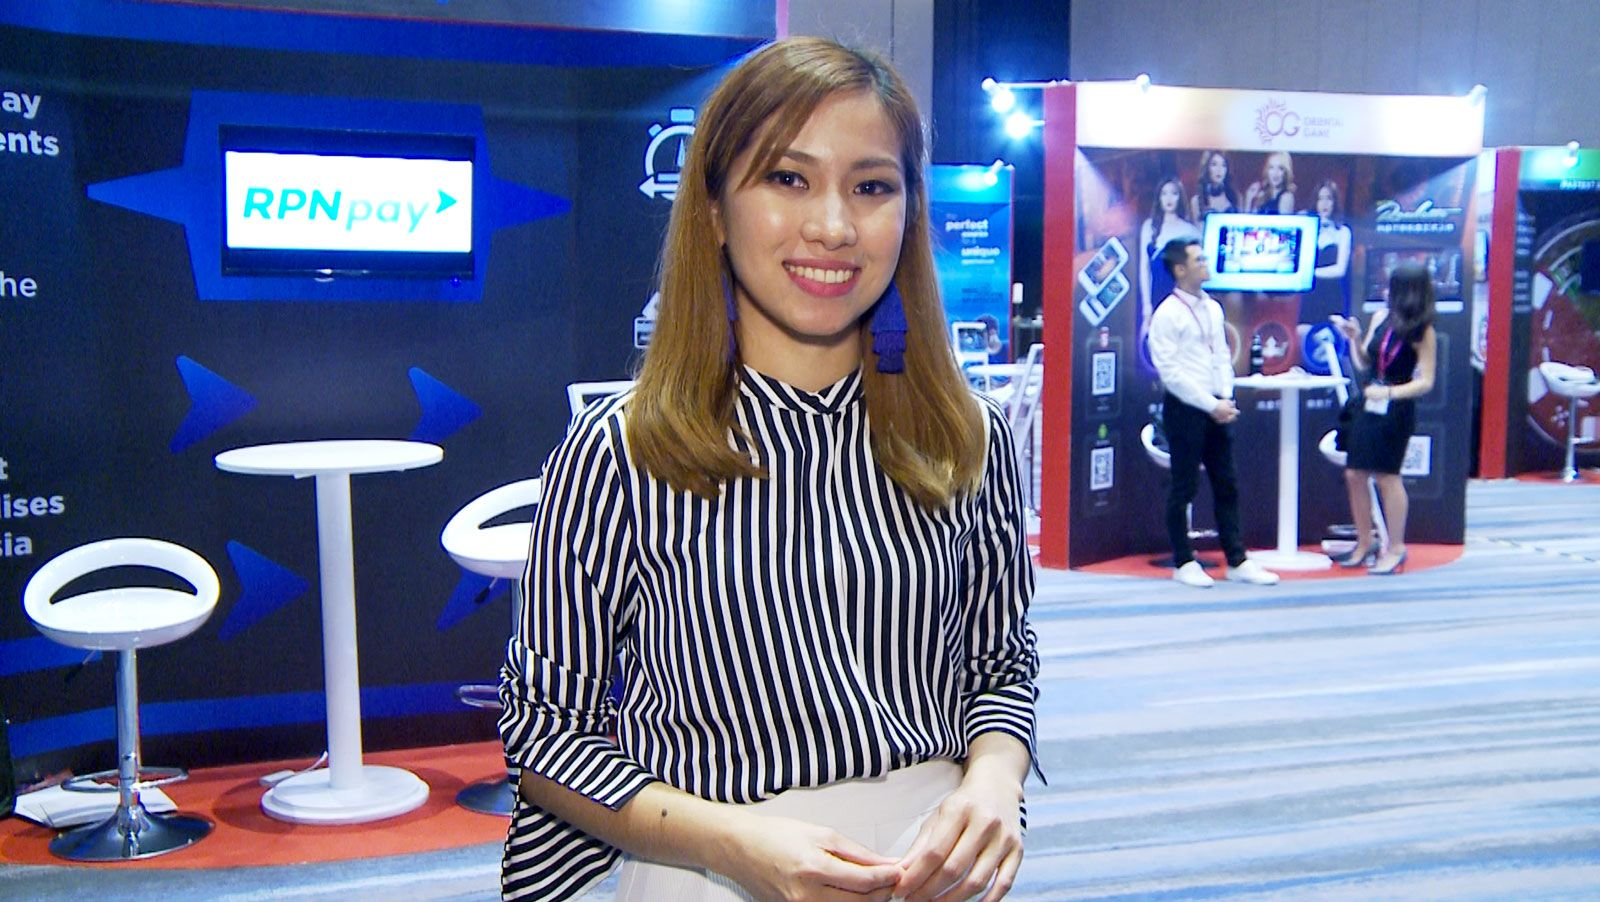 Asean Gaming Summit 2018 day 2 highlights